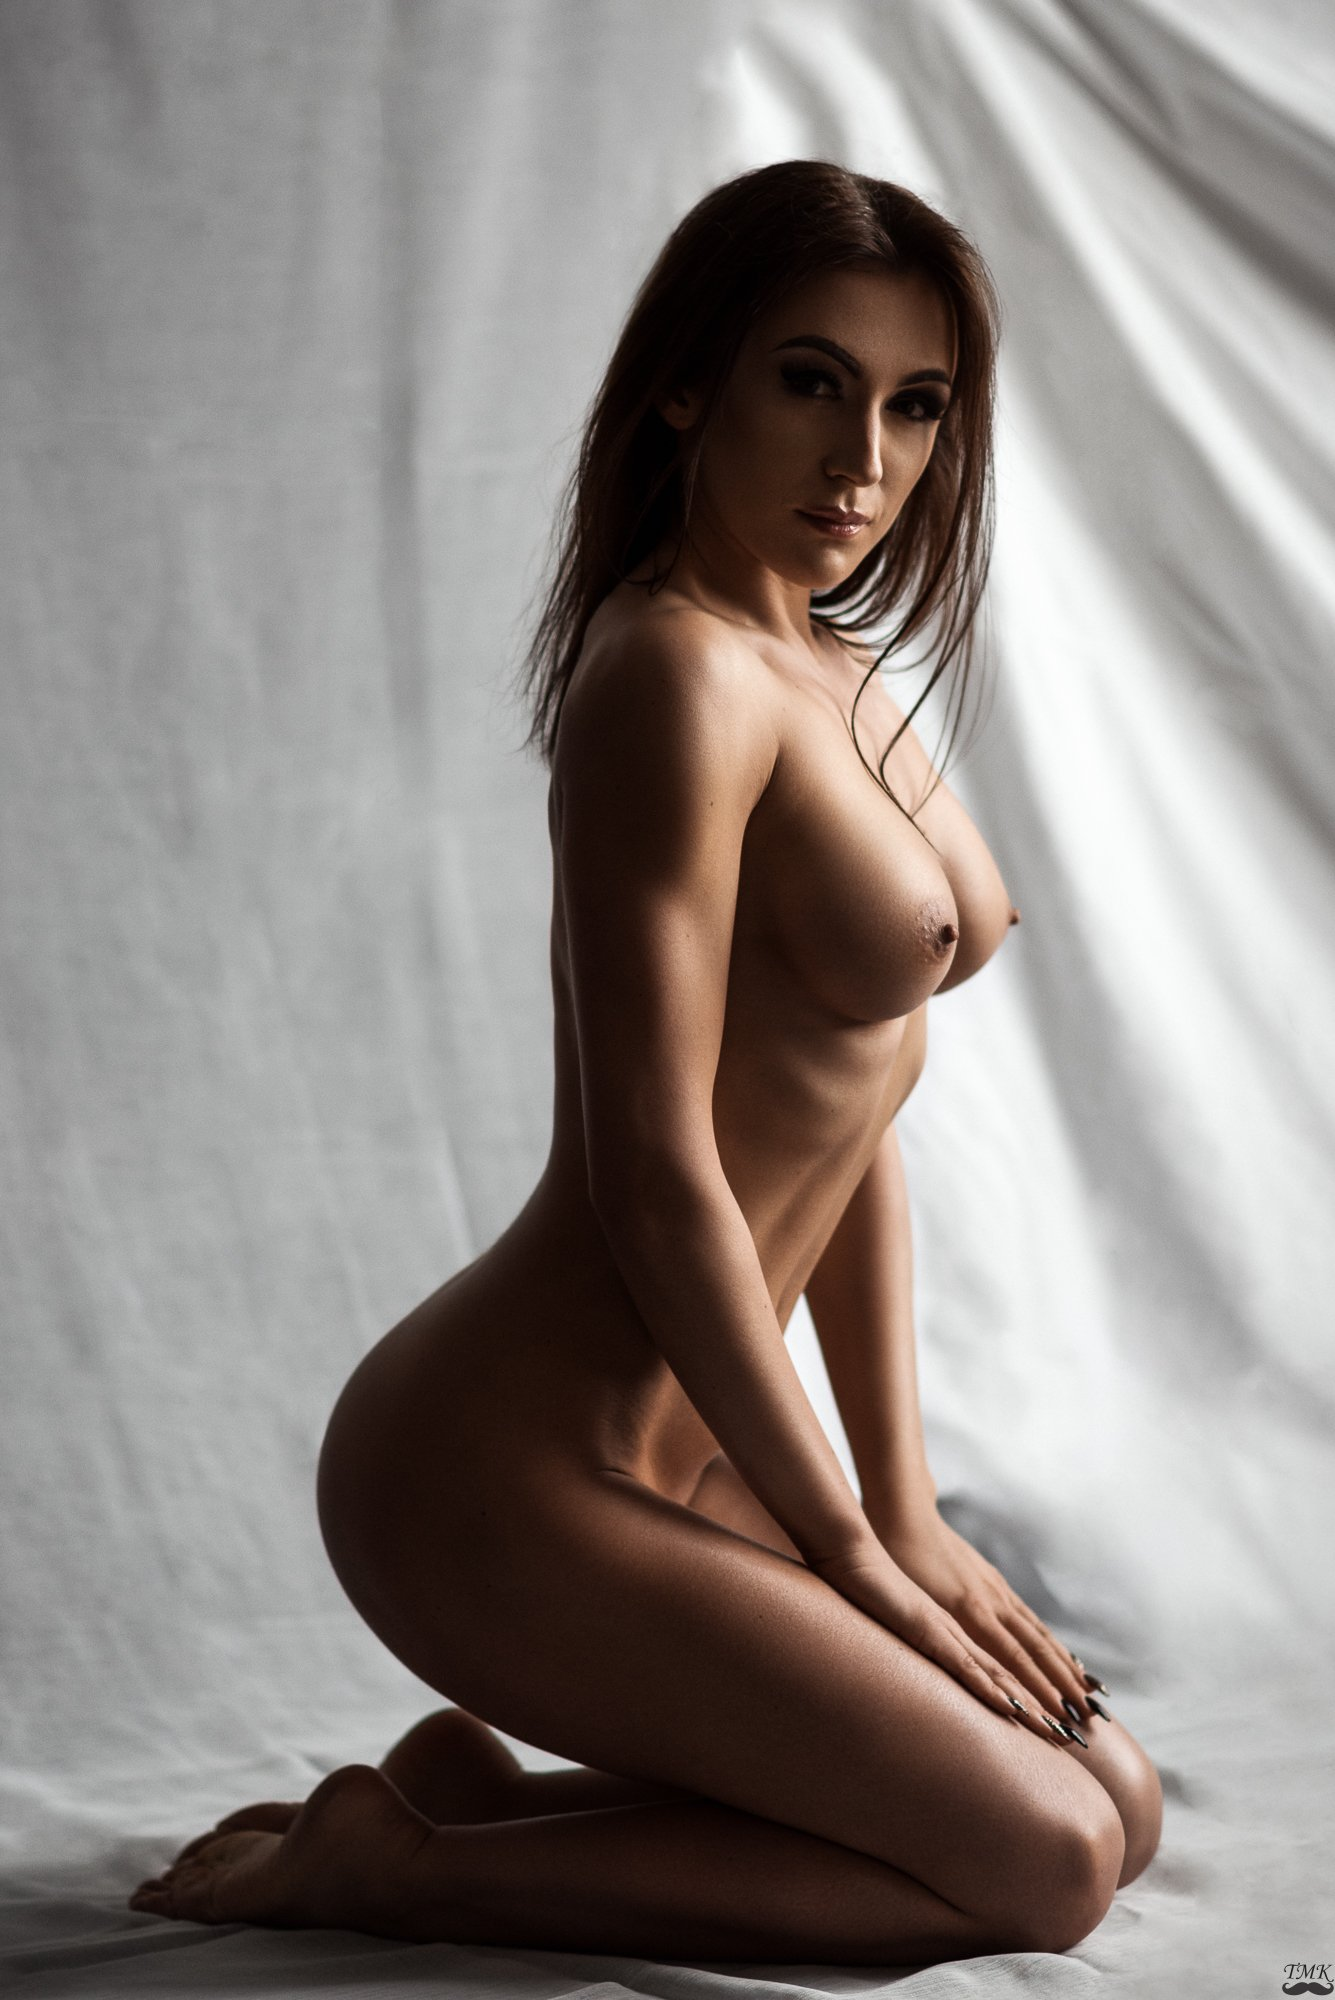 portrait, nude, fit, body, look, dramatic, colors, style, fine nude, woman, topless, look , Tomash